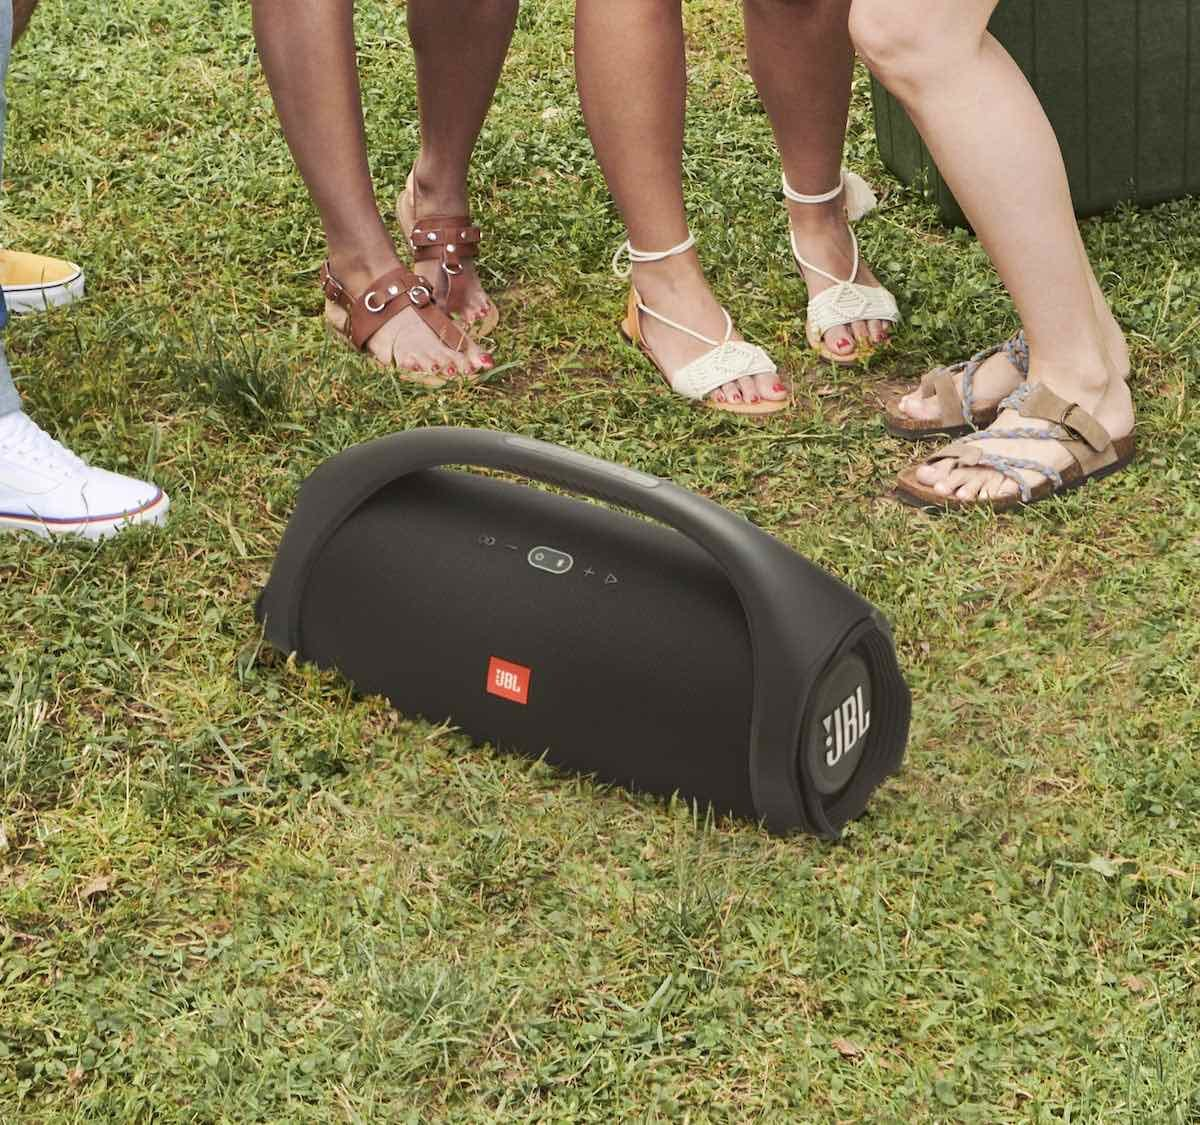 JBL Boombox 2 Powerful Portable Bluetooth Speaker plays music for up to 24 hours